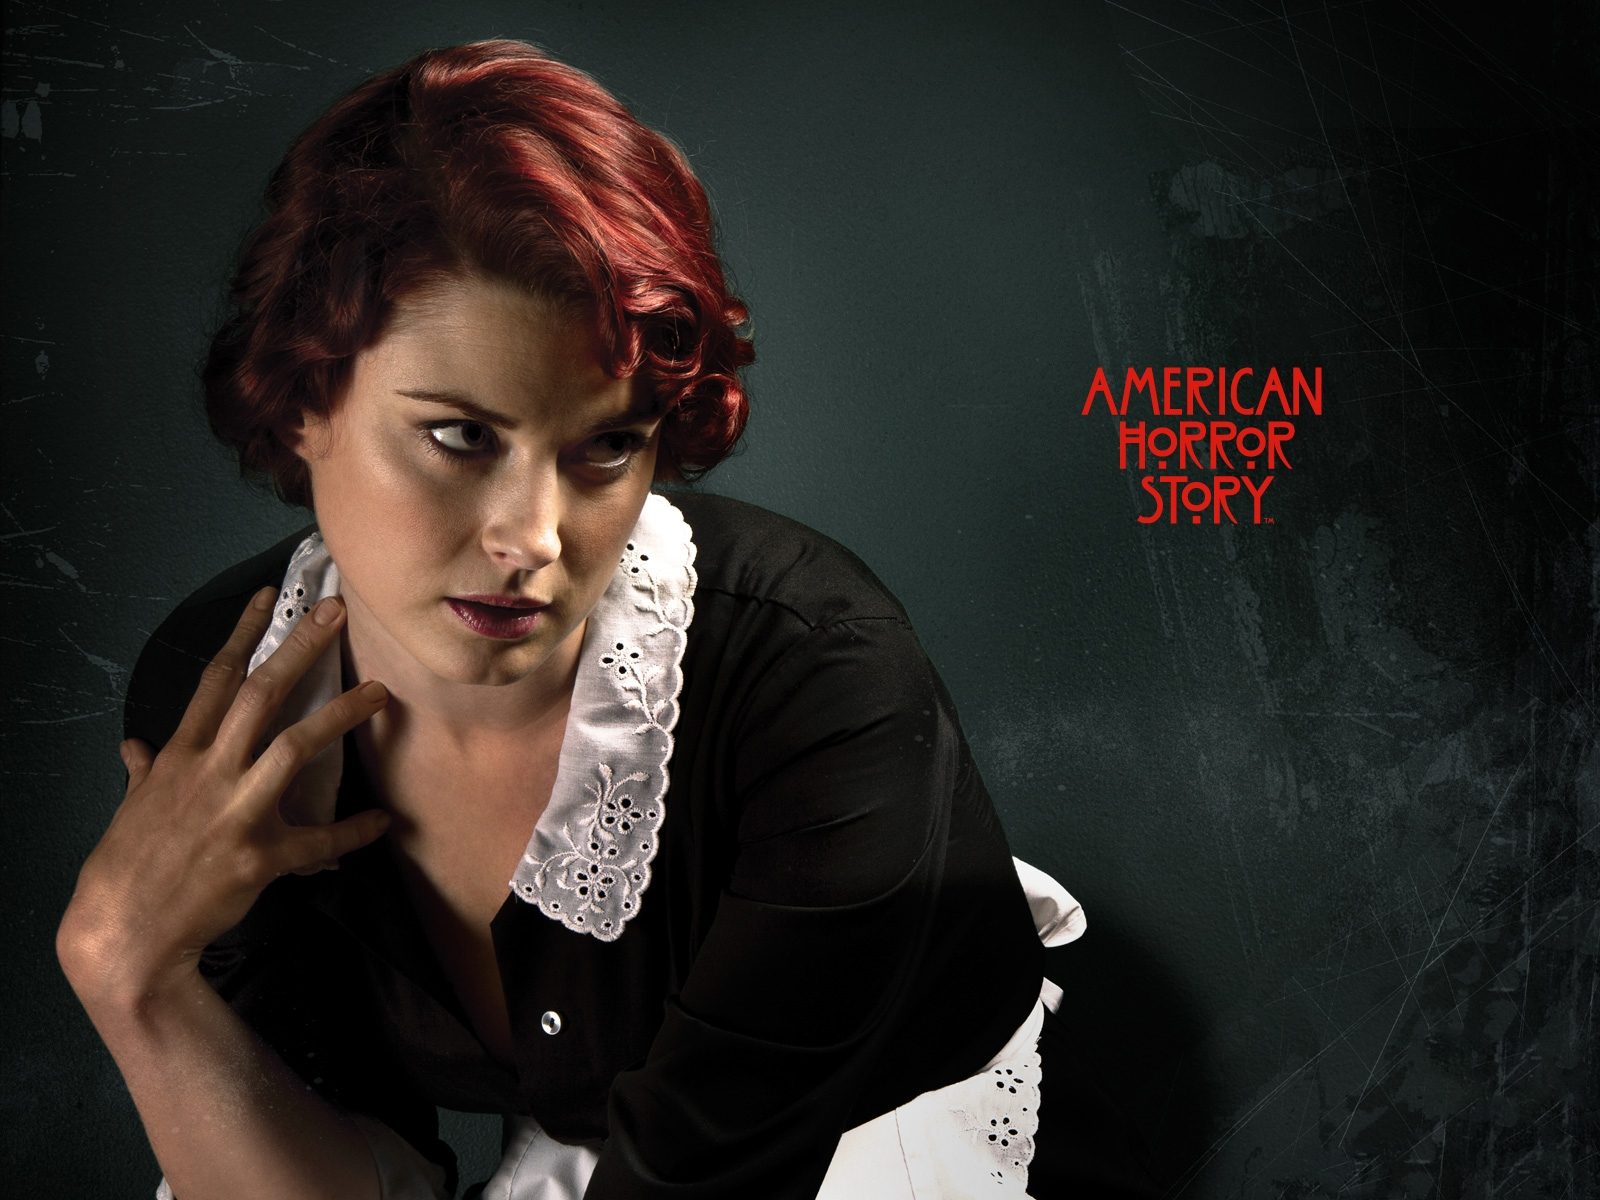 Para que no me olvide mayo 2012 - American horror story wallpaper ...